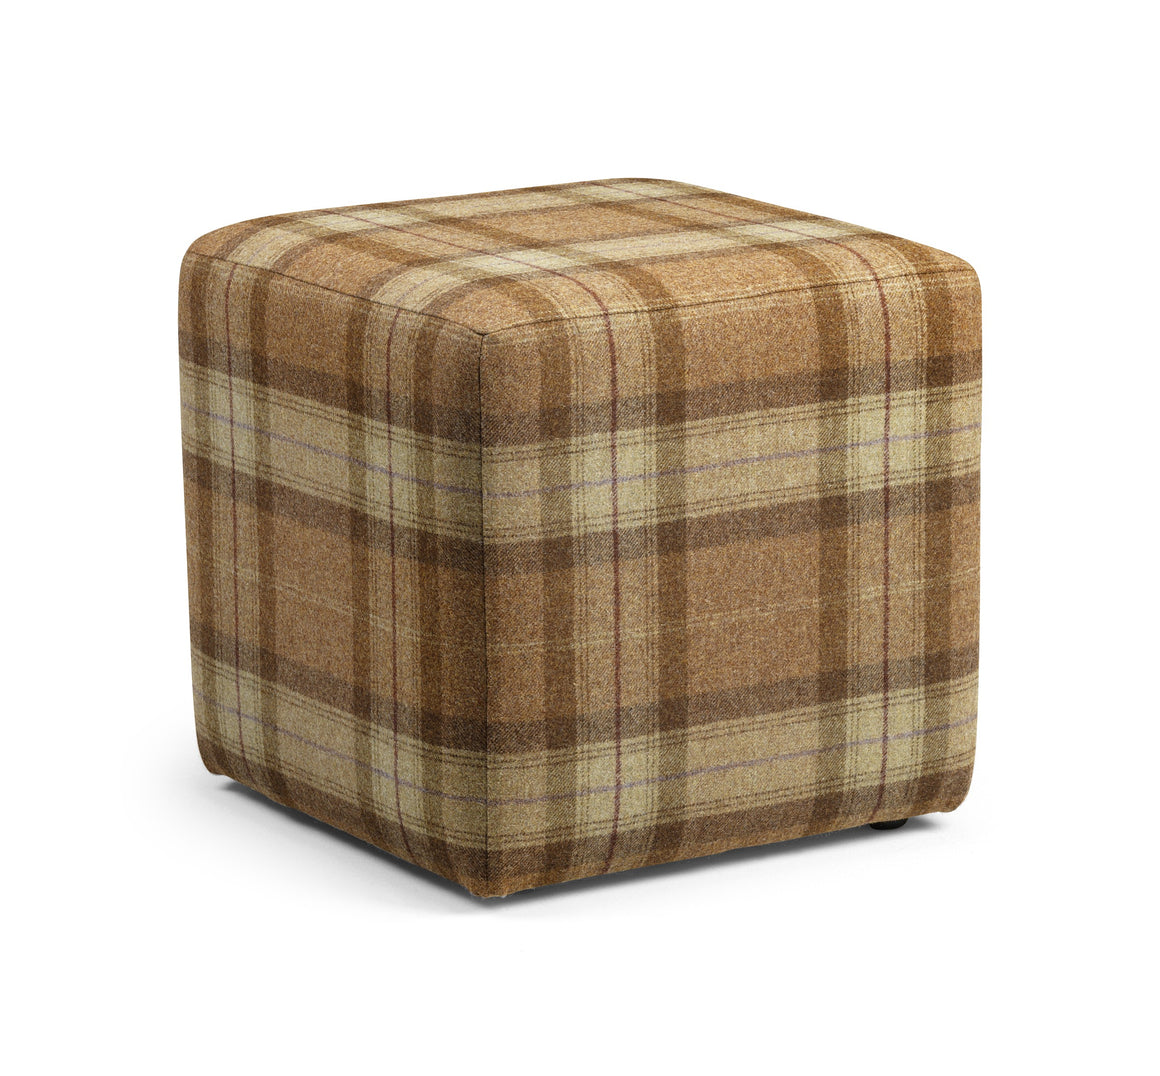 Cube footstool in Linwood Ollaberry Wool